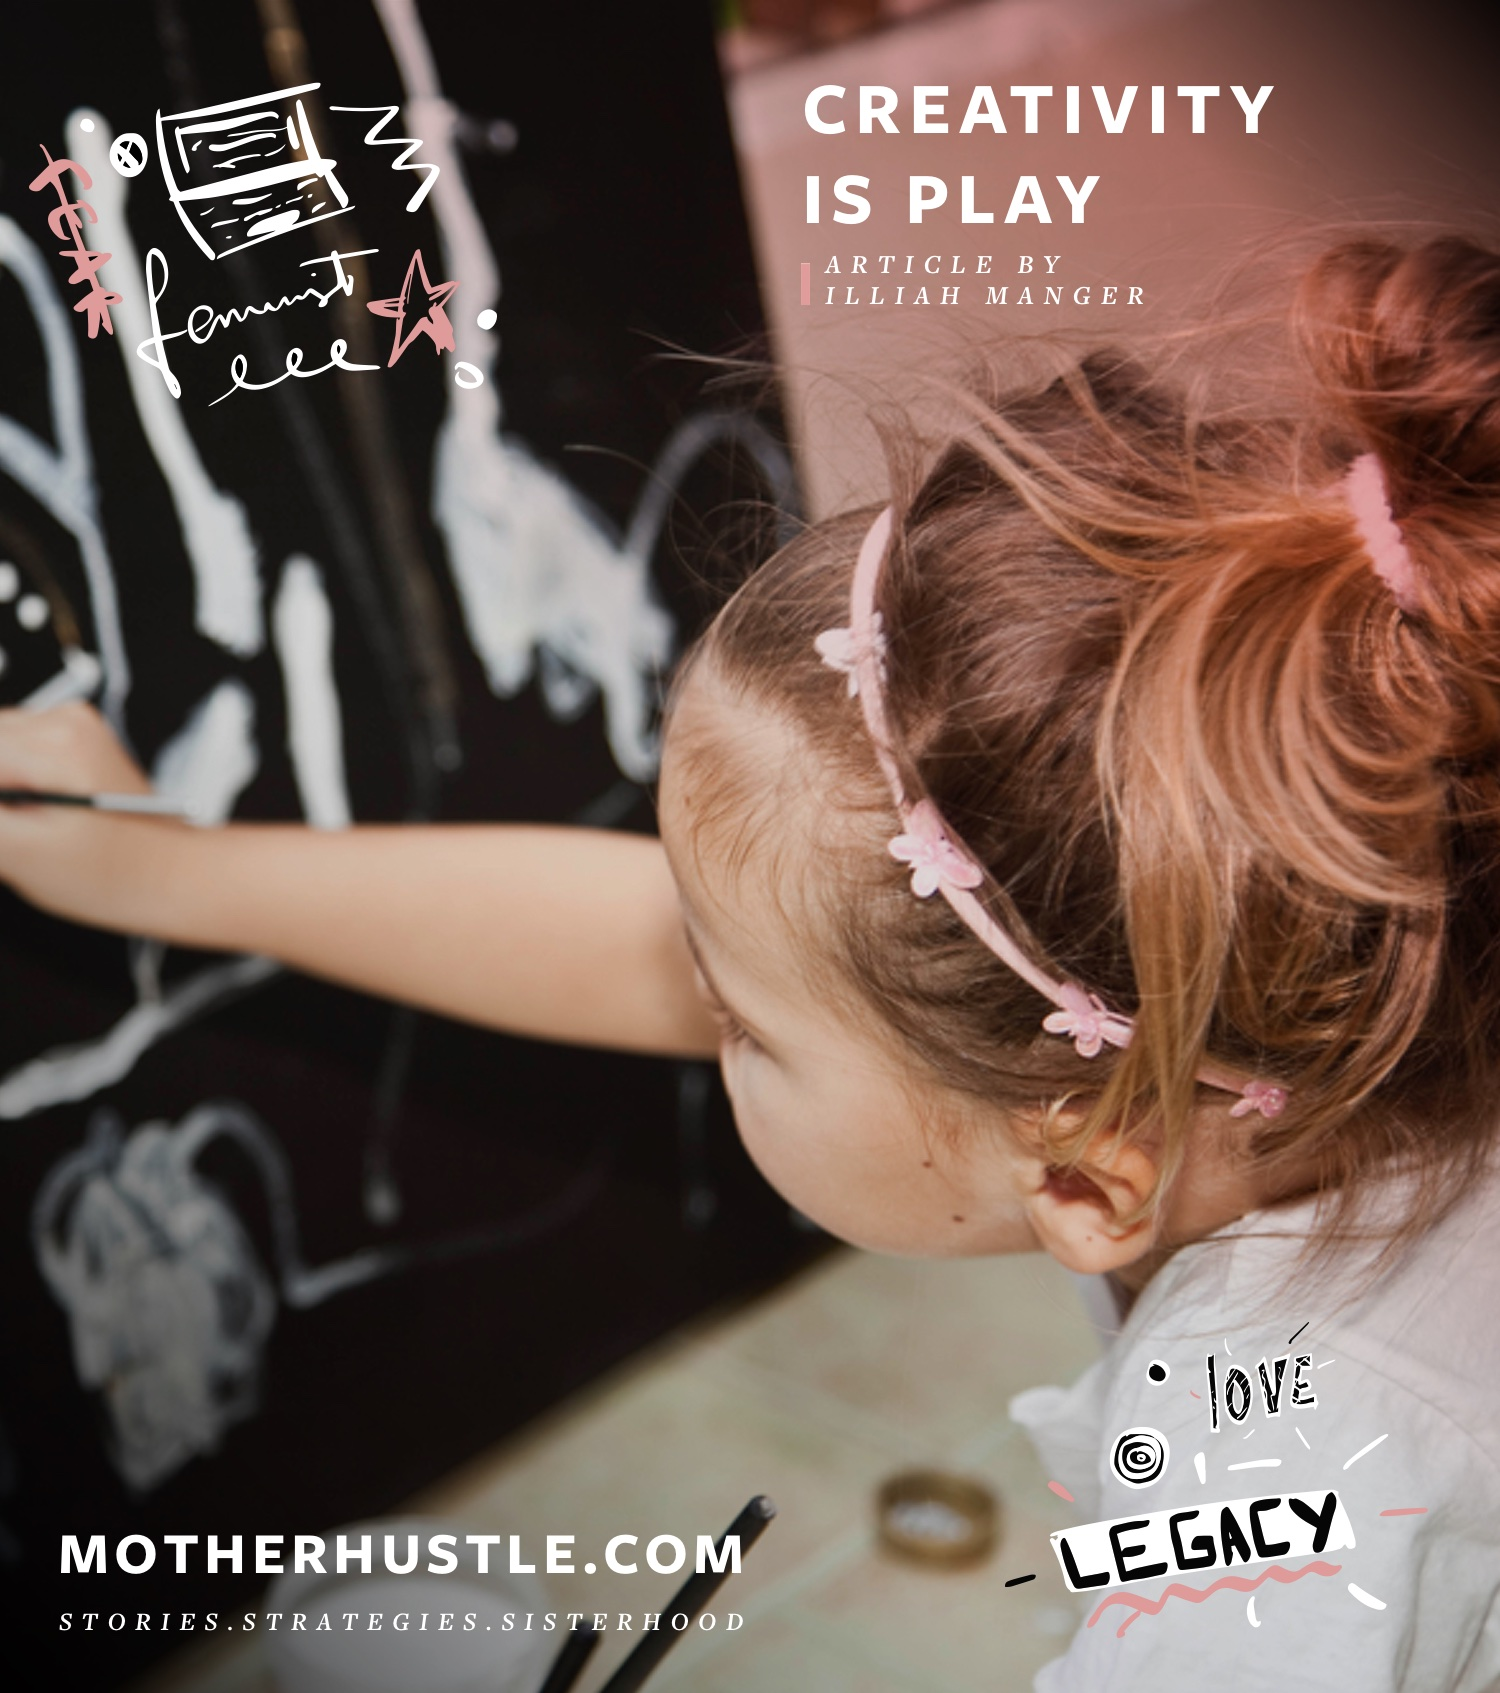 Creativity Is Play - Illiah Manger MotherHustle